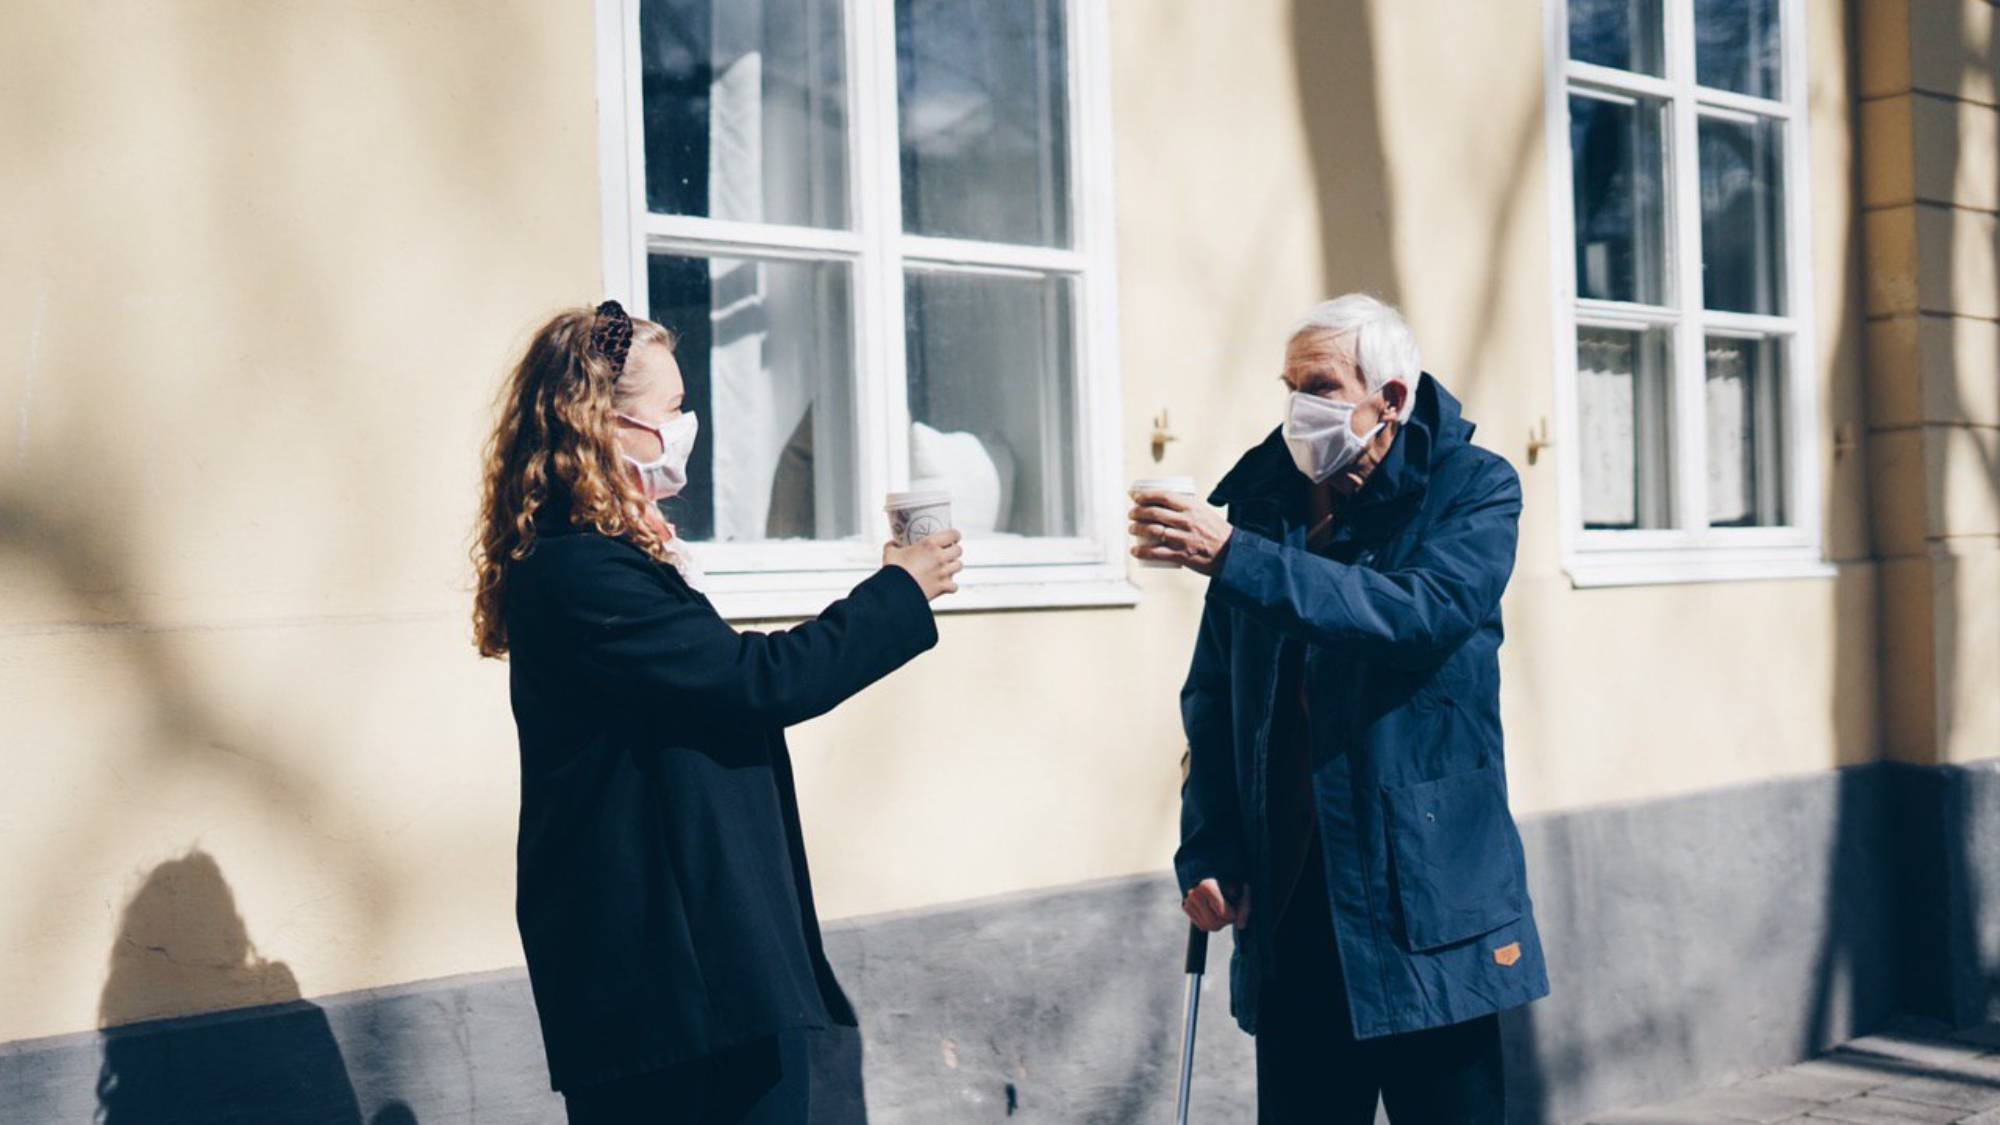 man and woman wearing masks drink coffee